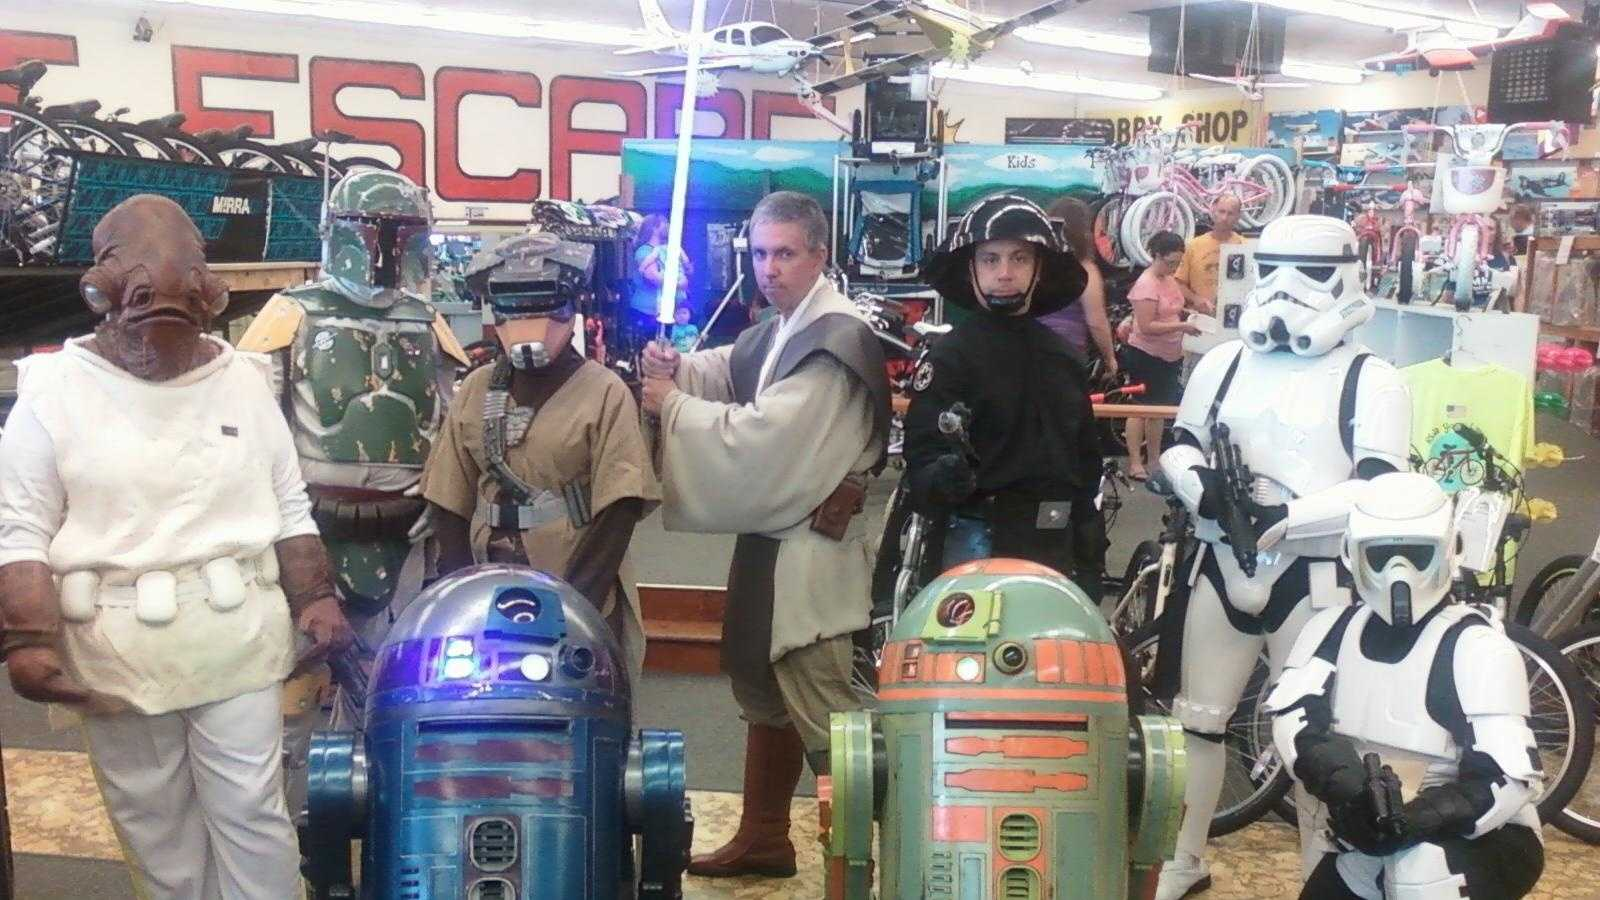 Star Wars villians and heroes gather for a good cause at Great Escape in Greenville.